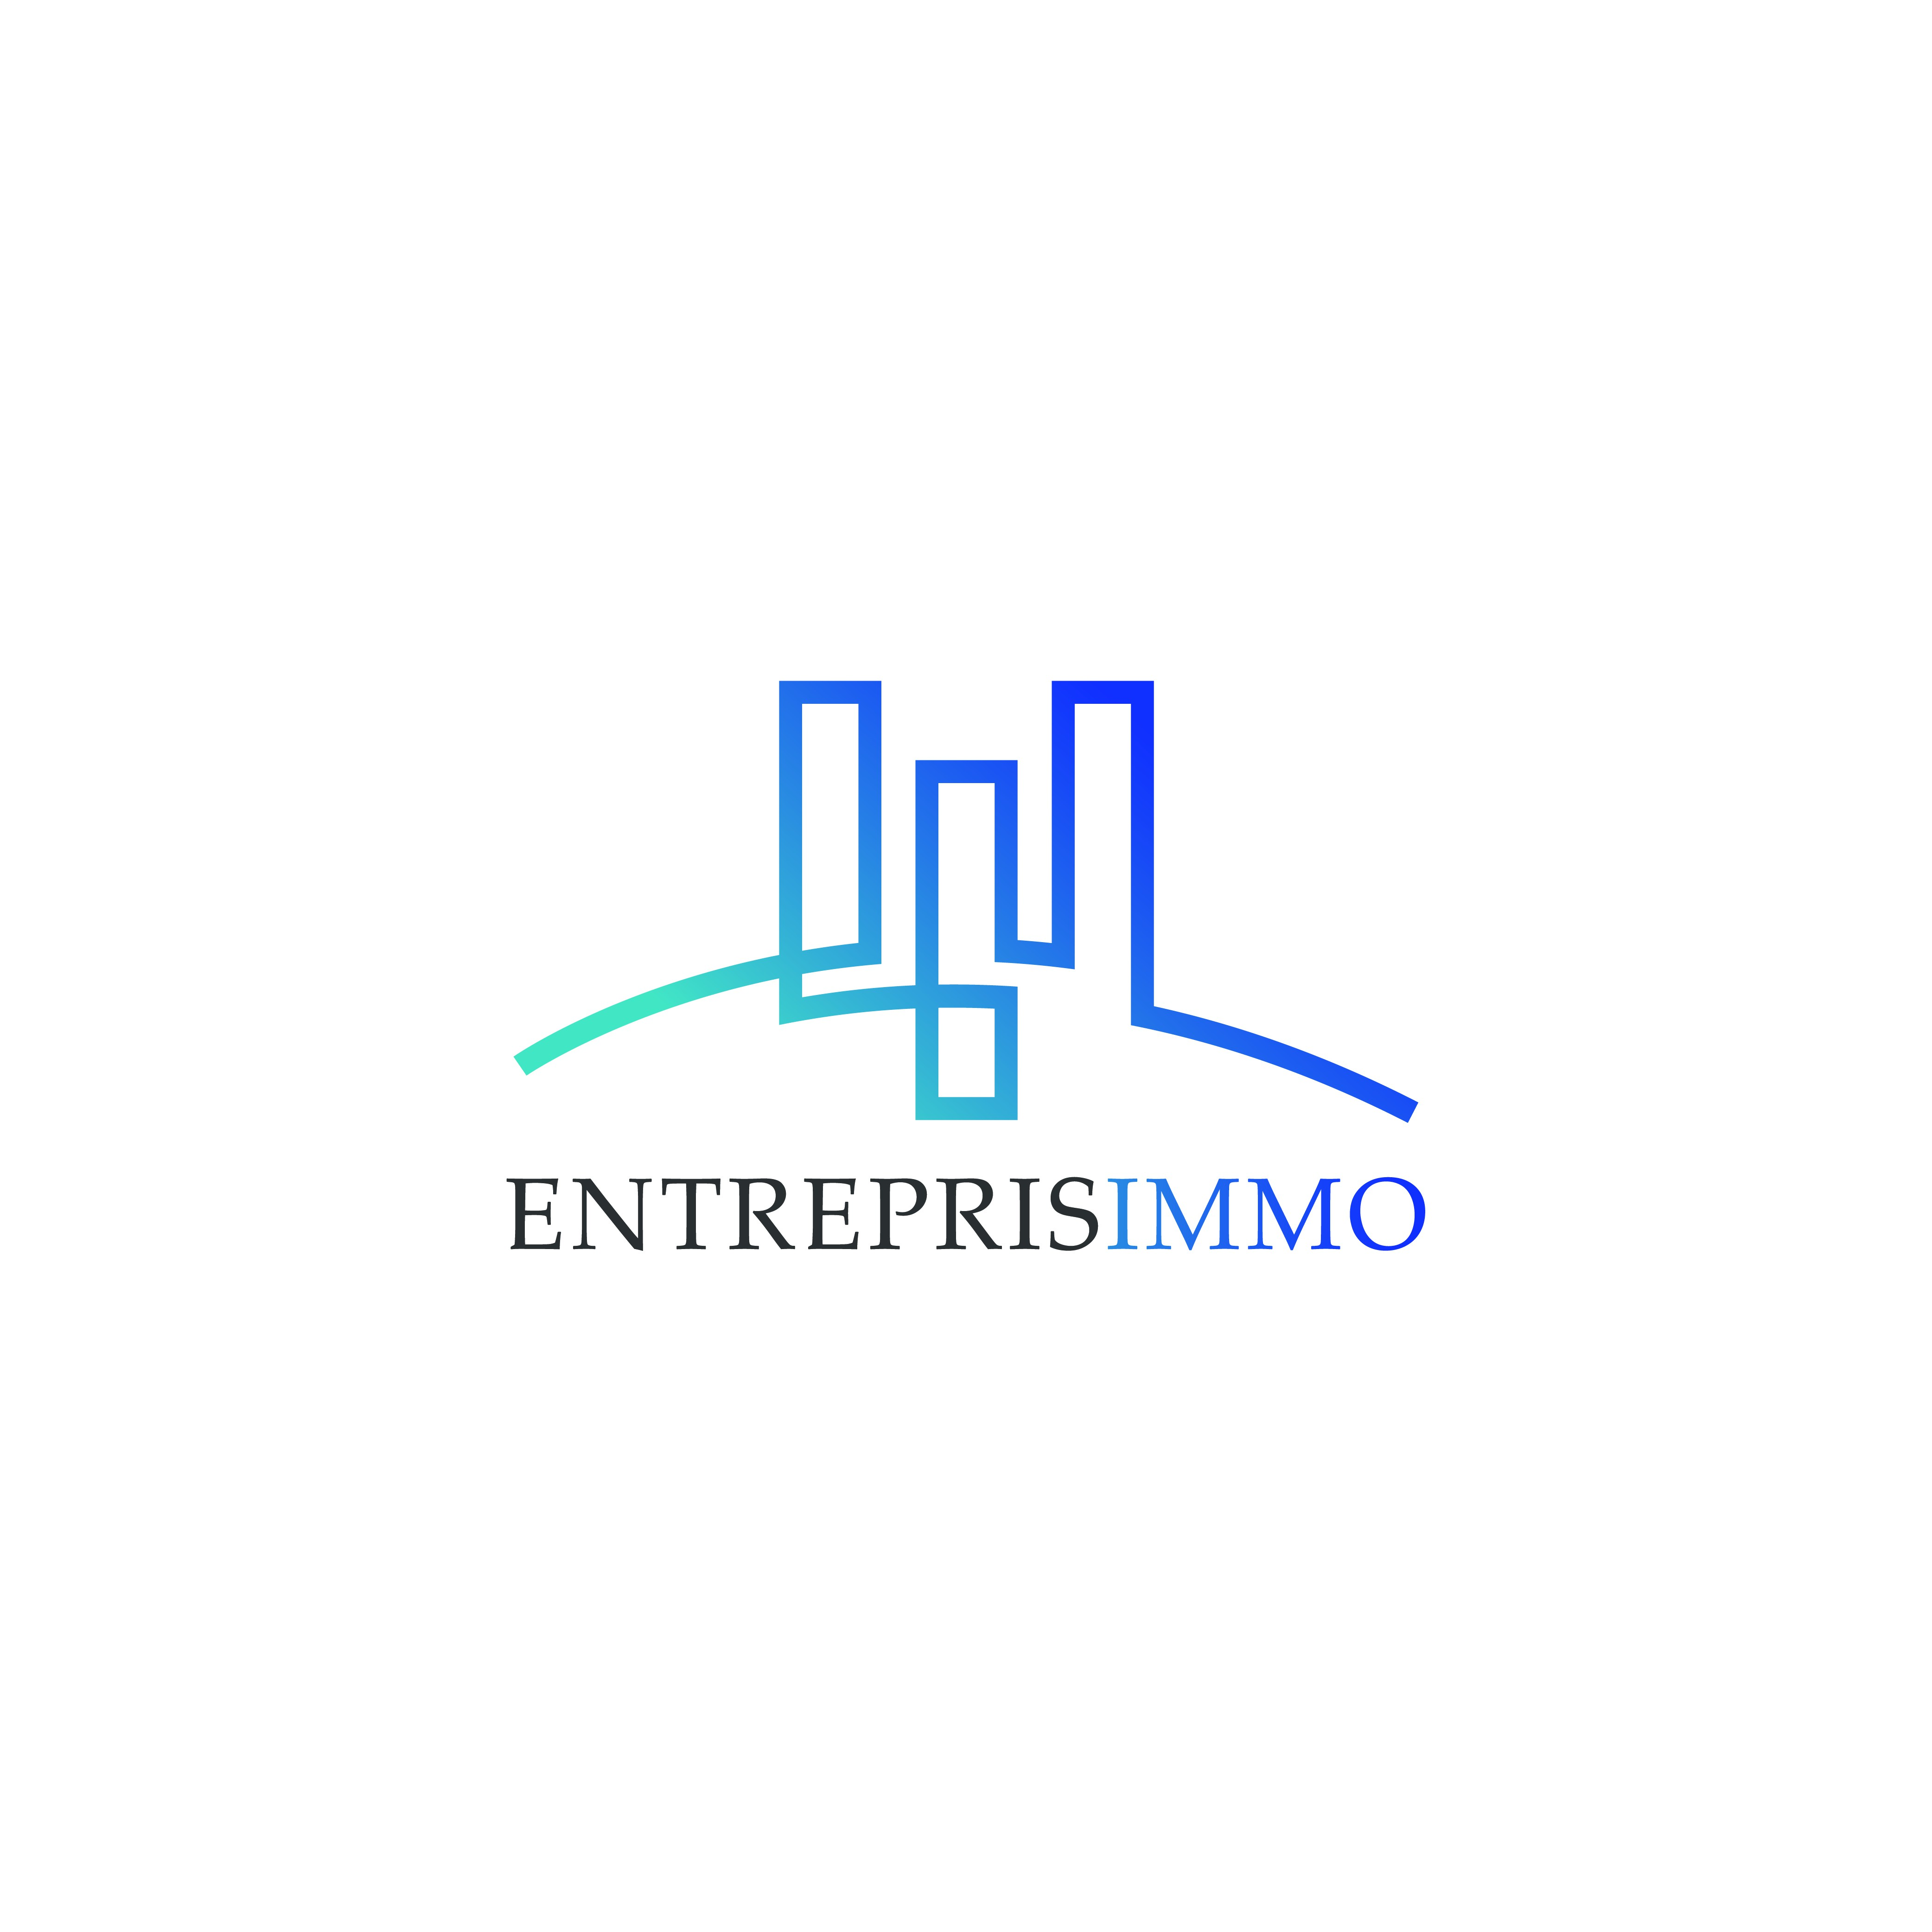 Please find us the special logo for our real estate company :)